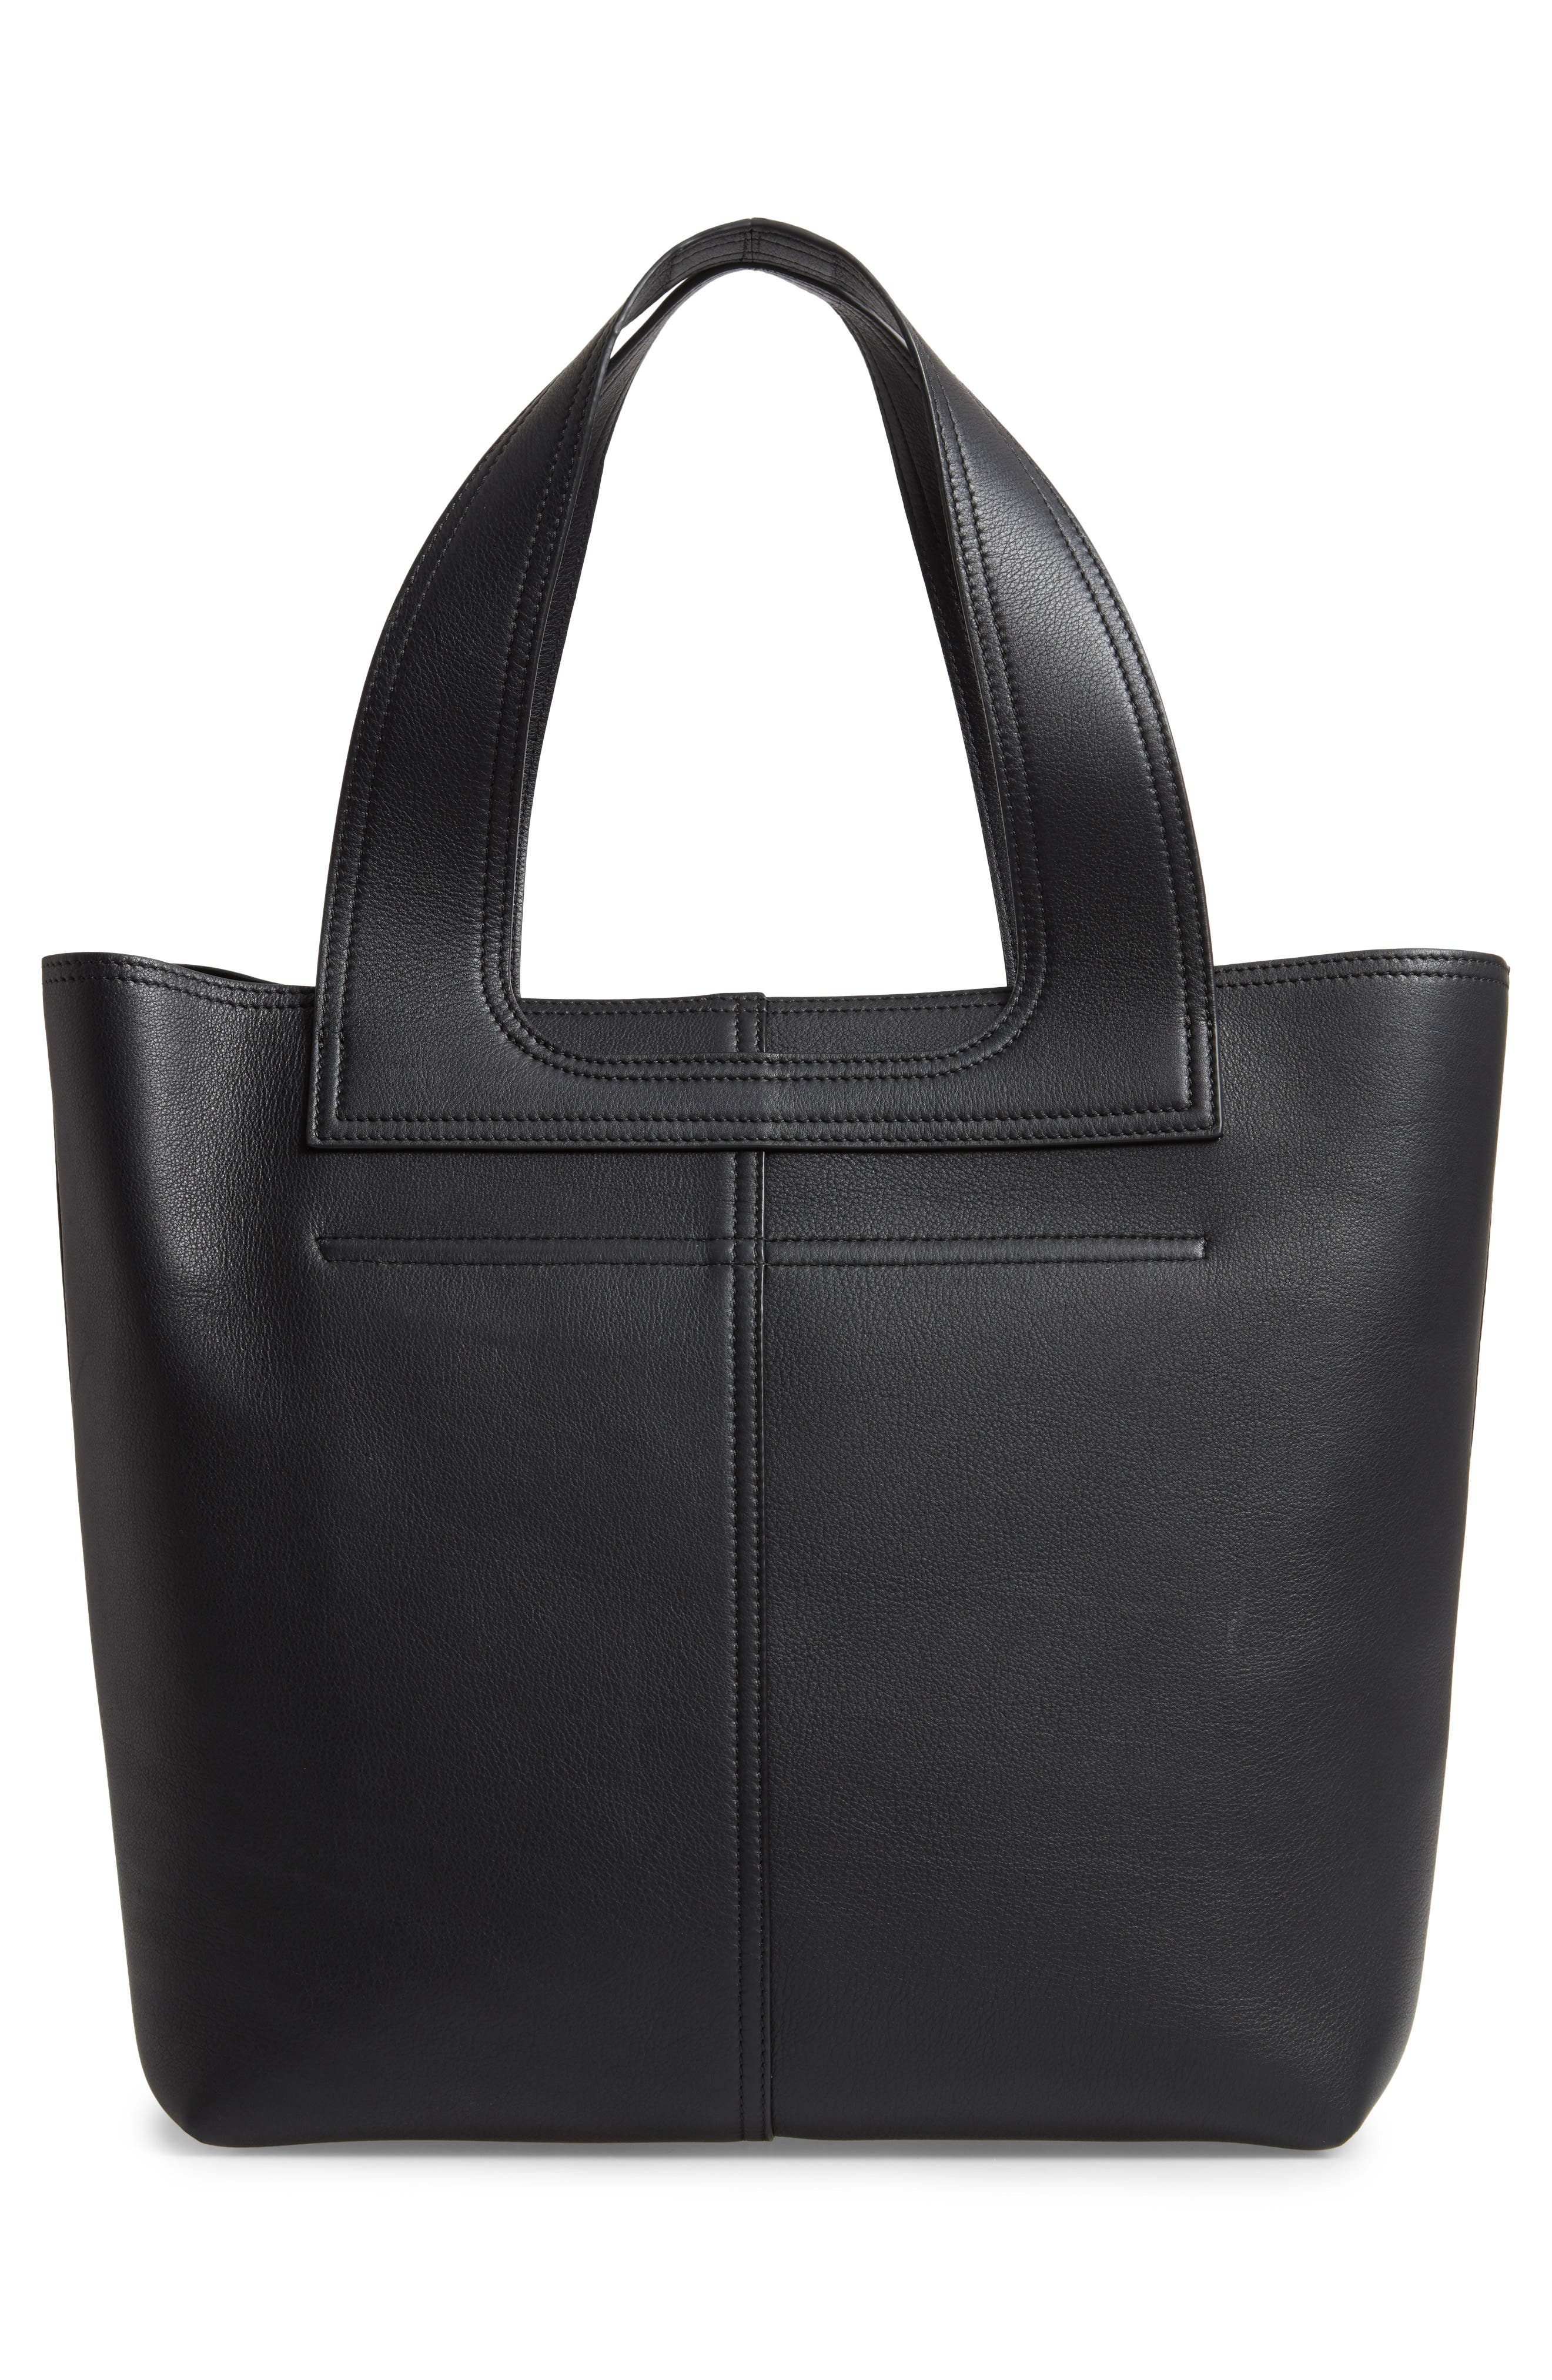 VICTORIA BECKHAM, Apron Leather Tote, Alternate thumbnail 3, color, 001